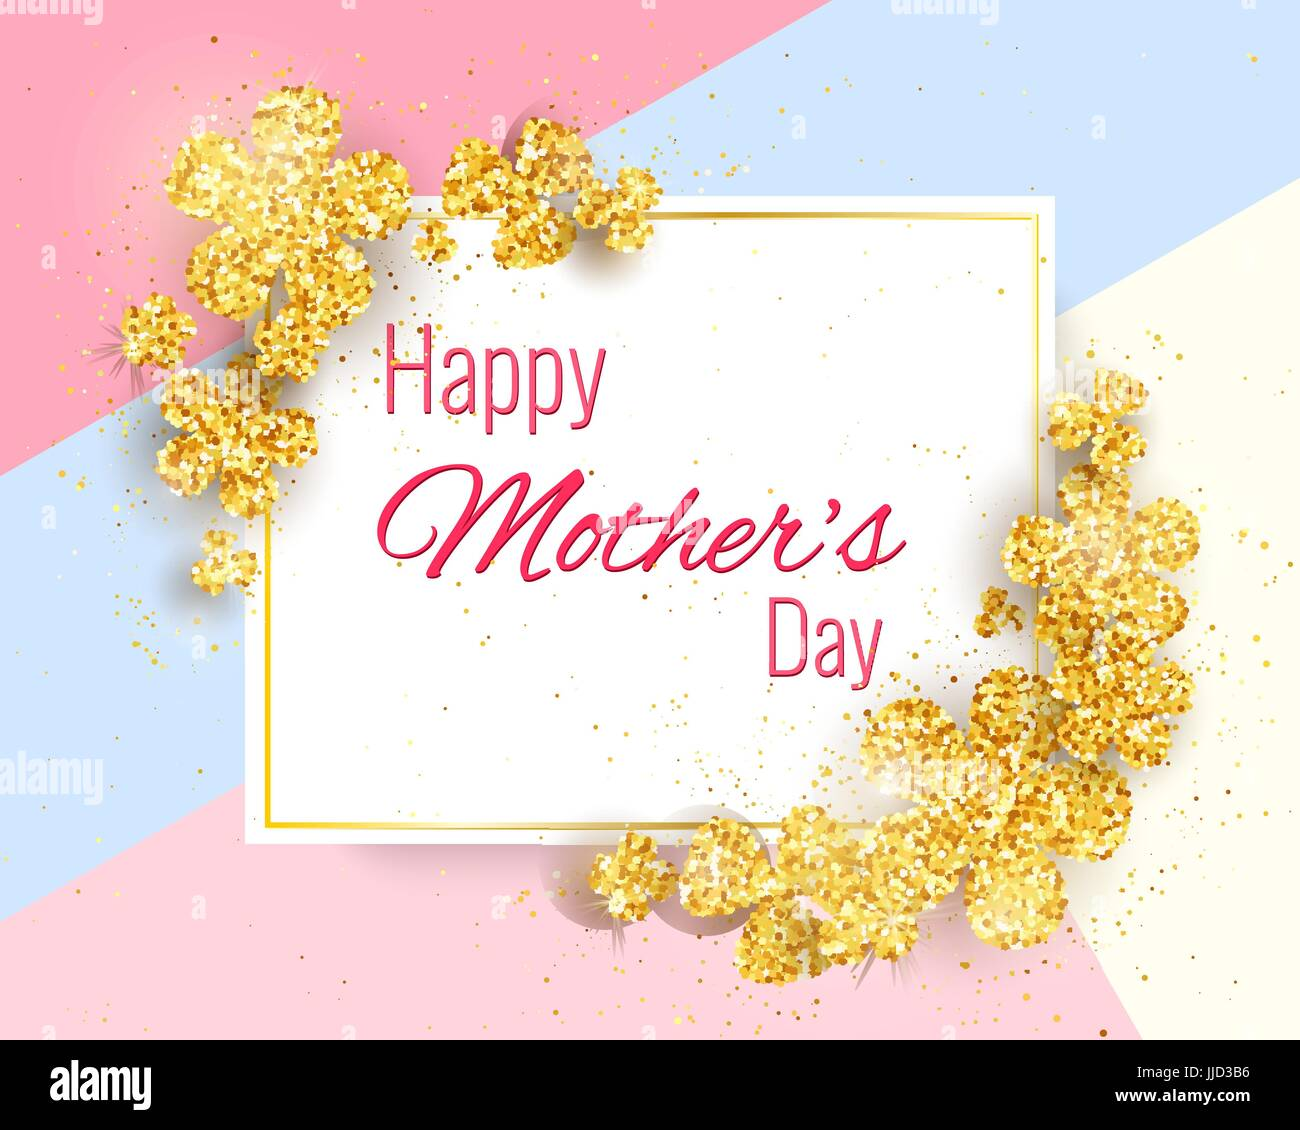 Happy mothers day greeting card with gold glittering flowers. Vector ...